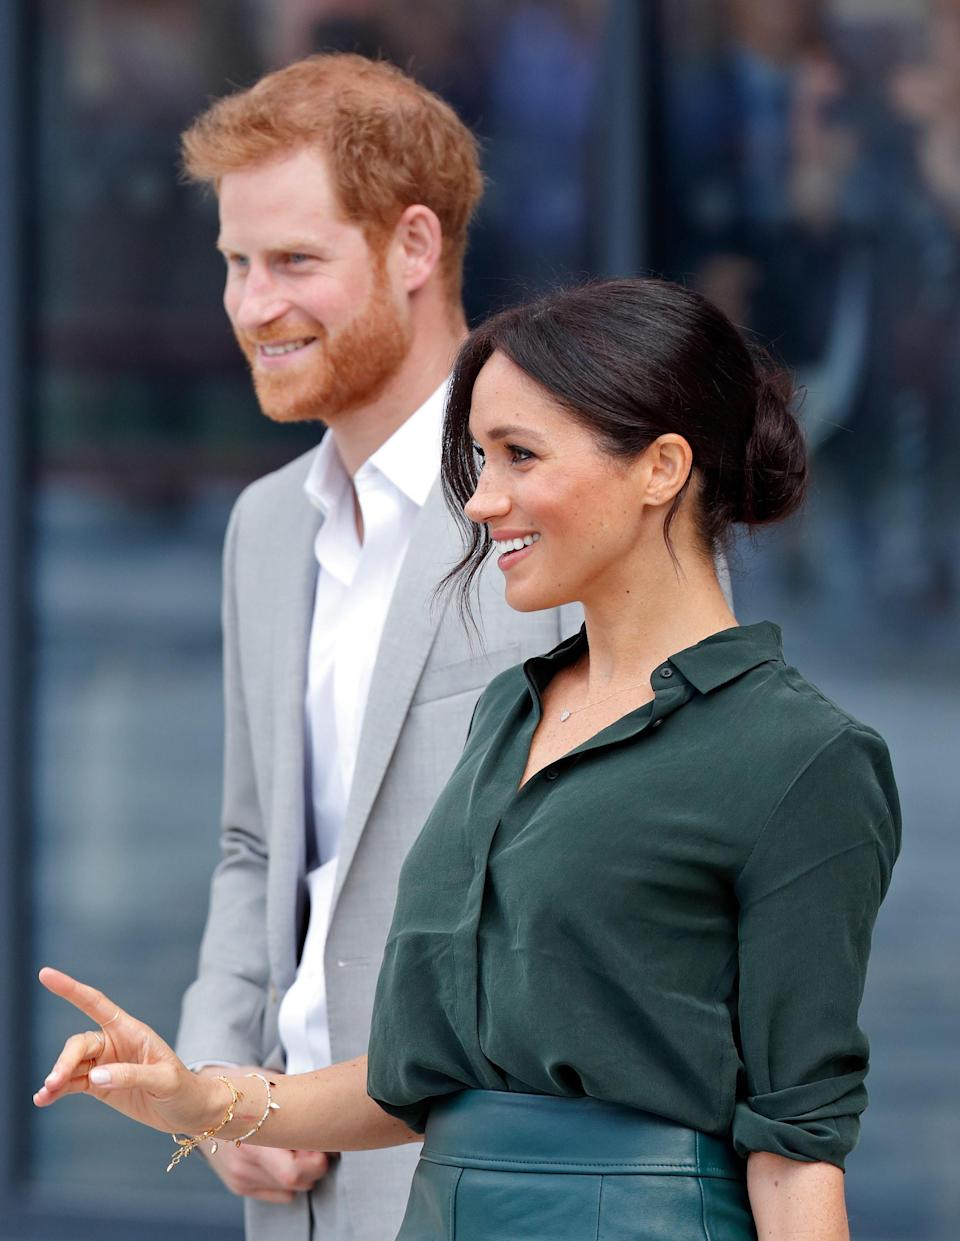 Meghan Markle and Prince Harry are photographed smiling